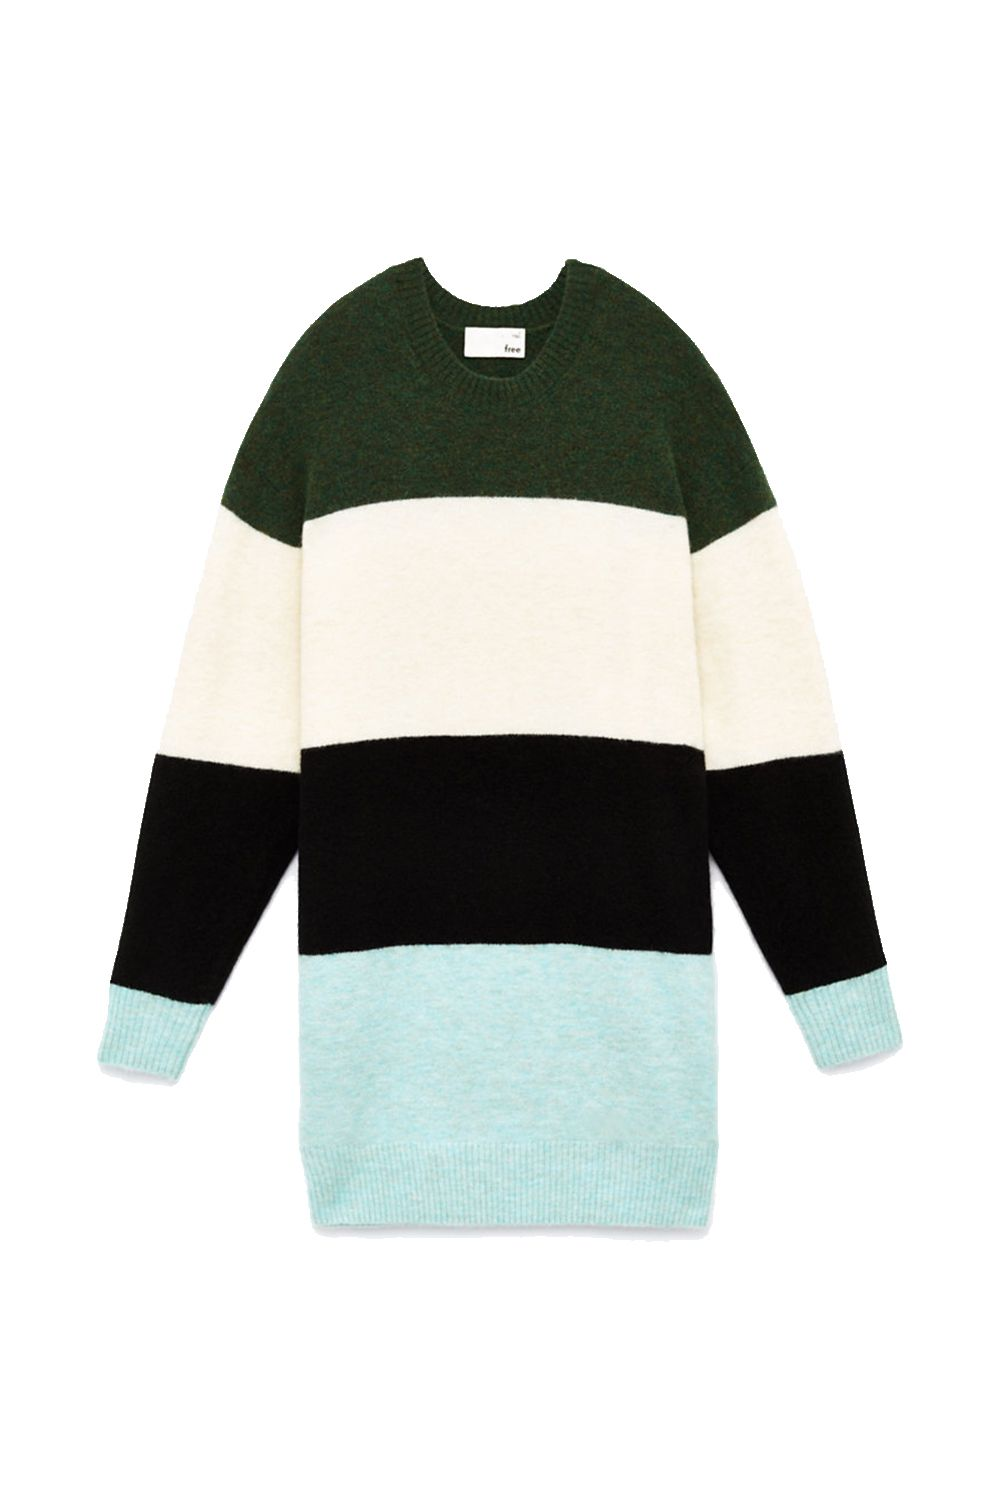 "<p>The rugby shirt is baaack. If you're still traumatized by the <em data-redactor-tag=""em"" data-verified=""redactor"">Blues Clues</em> people just REPLACING Steve with some rando, here's a gentler, cozier sweater dress with the same stripey vibe. There, there.</p><p><em data-redactor-tag=""em"" data-verified=""redactor"">Aritzia, $150</em></p><p><strong data-redactor-tag=""strong"" data-verified=""redactor"">BUY IT: <a href=""http://us.aritzia.com/product/cipriana-dress/64736.html?dwvar_64736_color=13576"" target=""_blank"" data-tracking-id=""recirc-text-link"">aritzia.com</a>.</strong></p>"